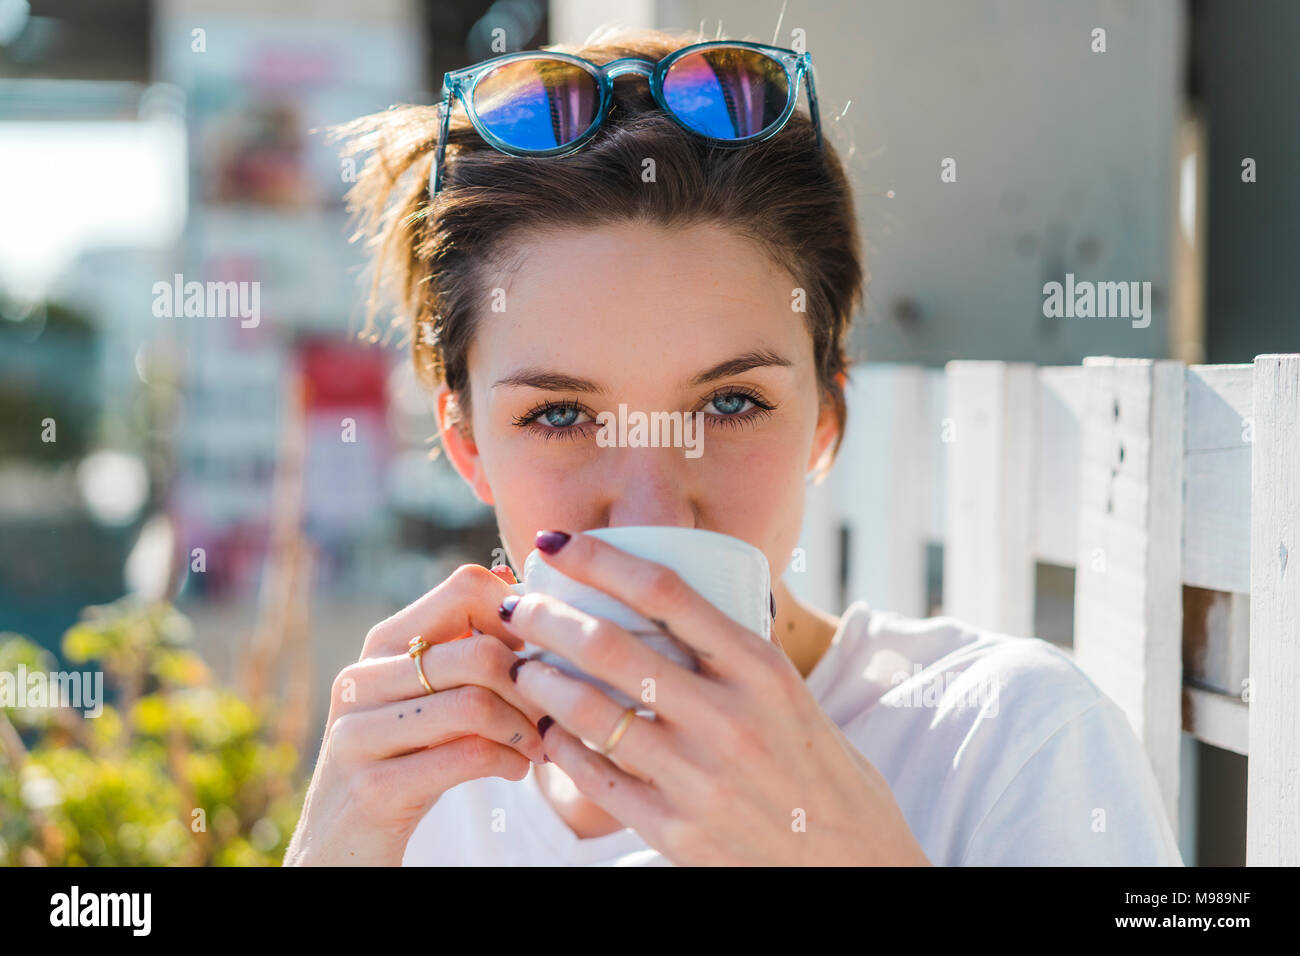 Portrait of woman drinking cup of coffee - Stock Image